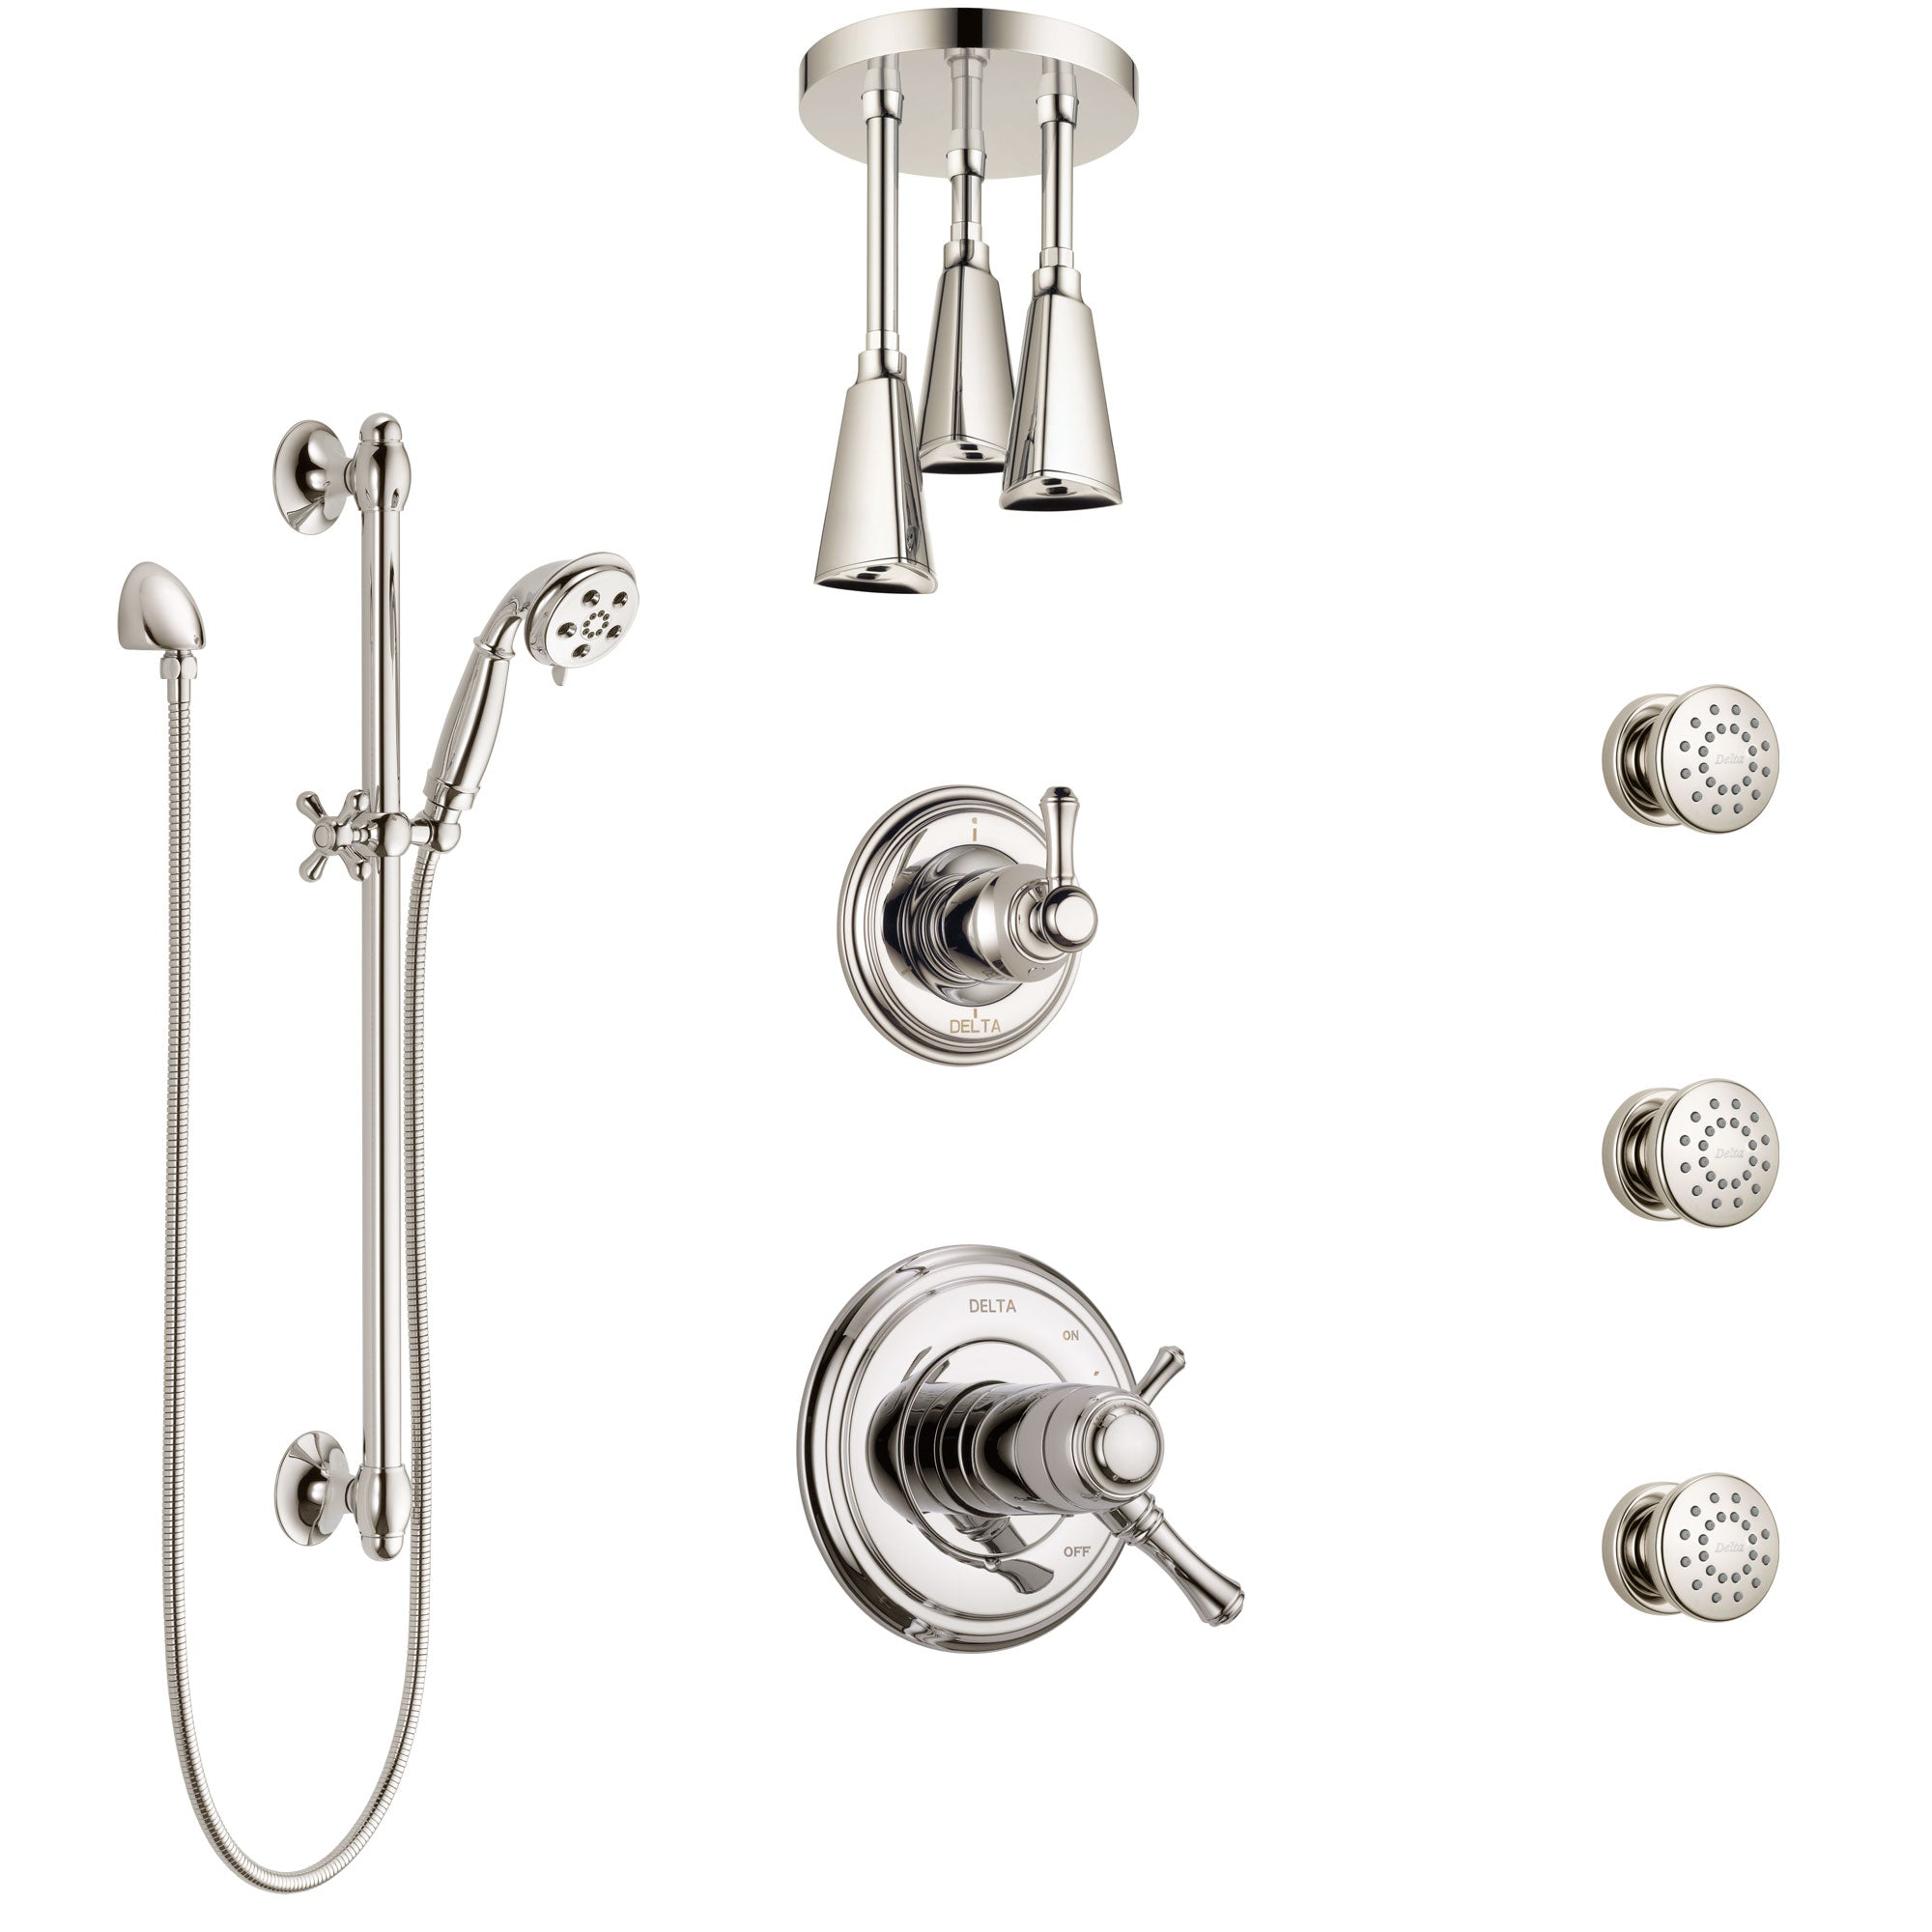 Delta Cassidy Polished Nickel Shower System with Dual Thermostatic Control, Diverter, Ceiling Showerhead, 3 Body Sprays, and Hand Shower SS17T971PN4